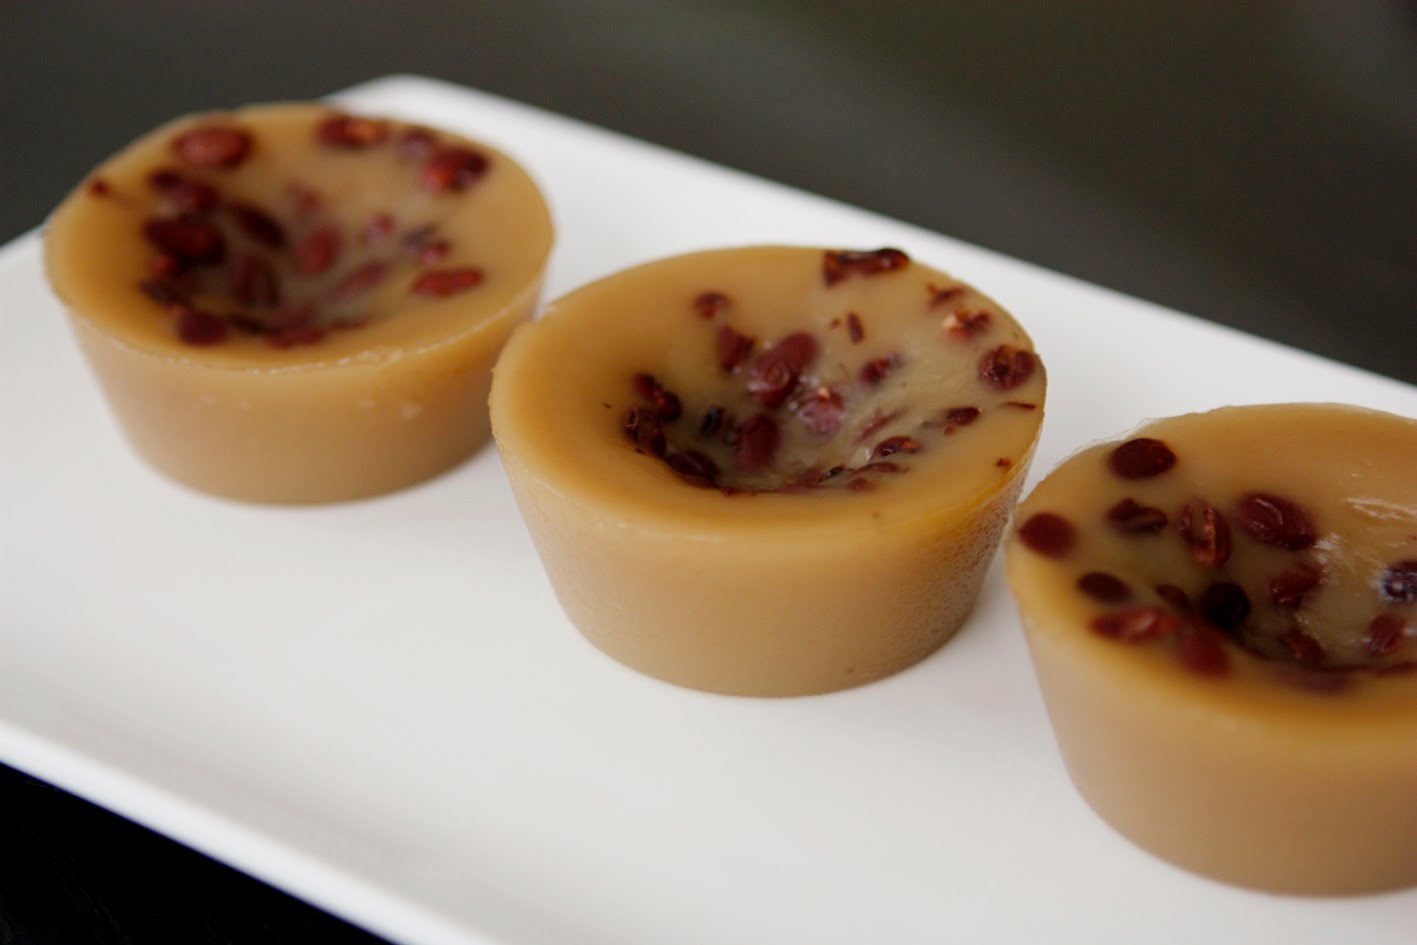 sUgArcrUnch: Chinese Street Food - Red Bean Pudding (砵仔糕)